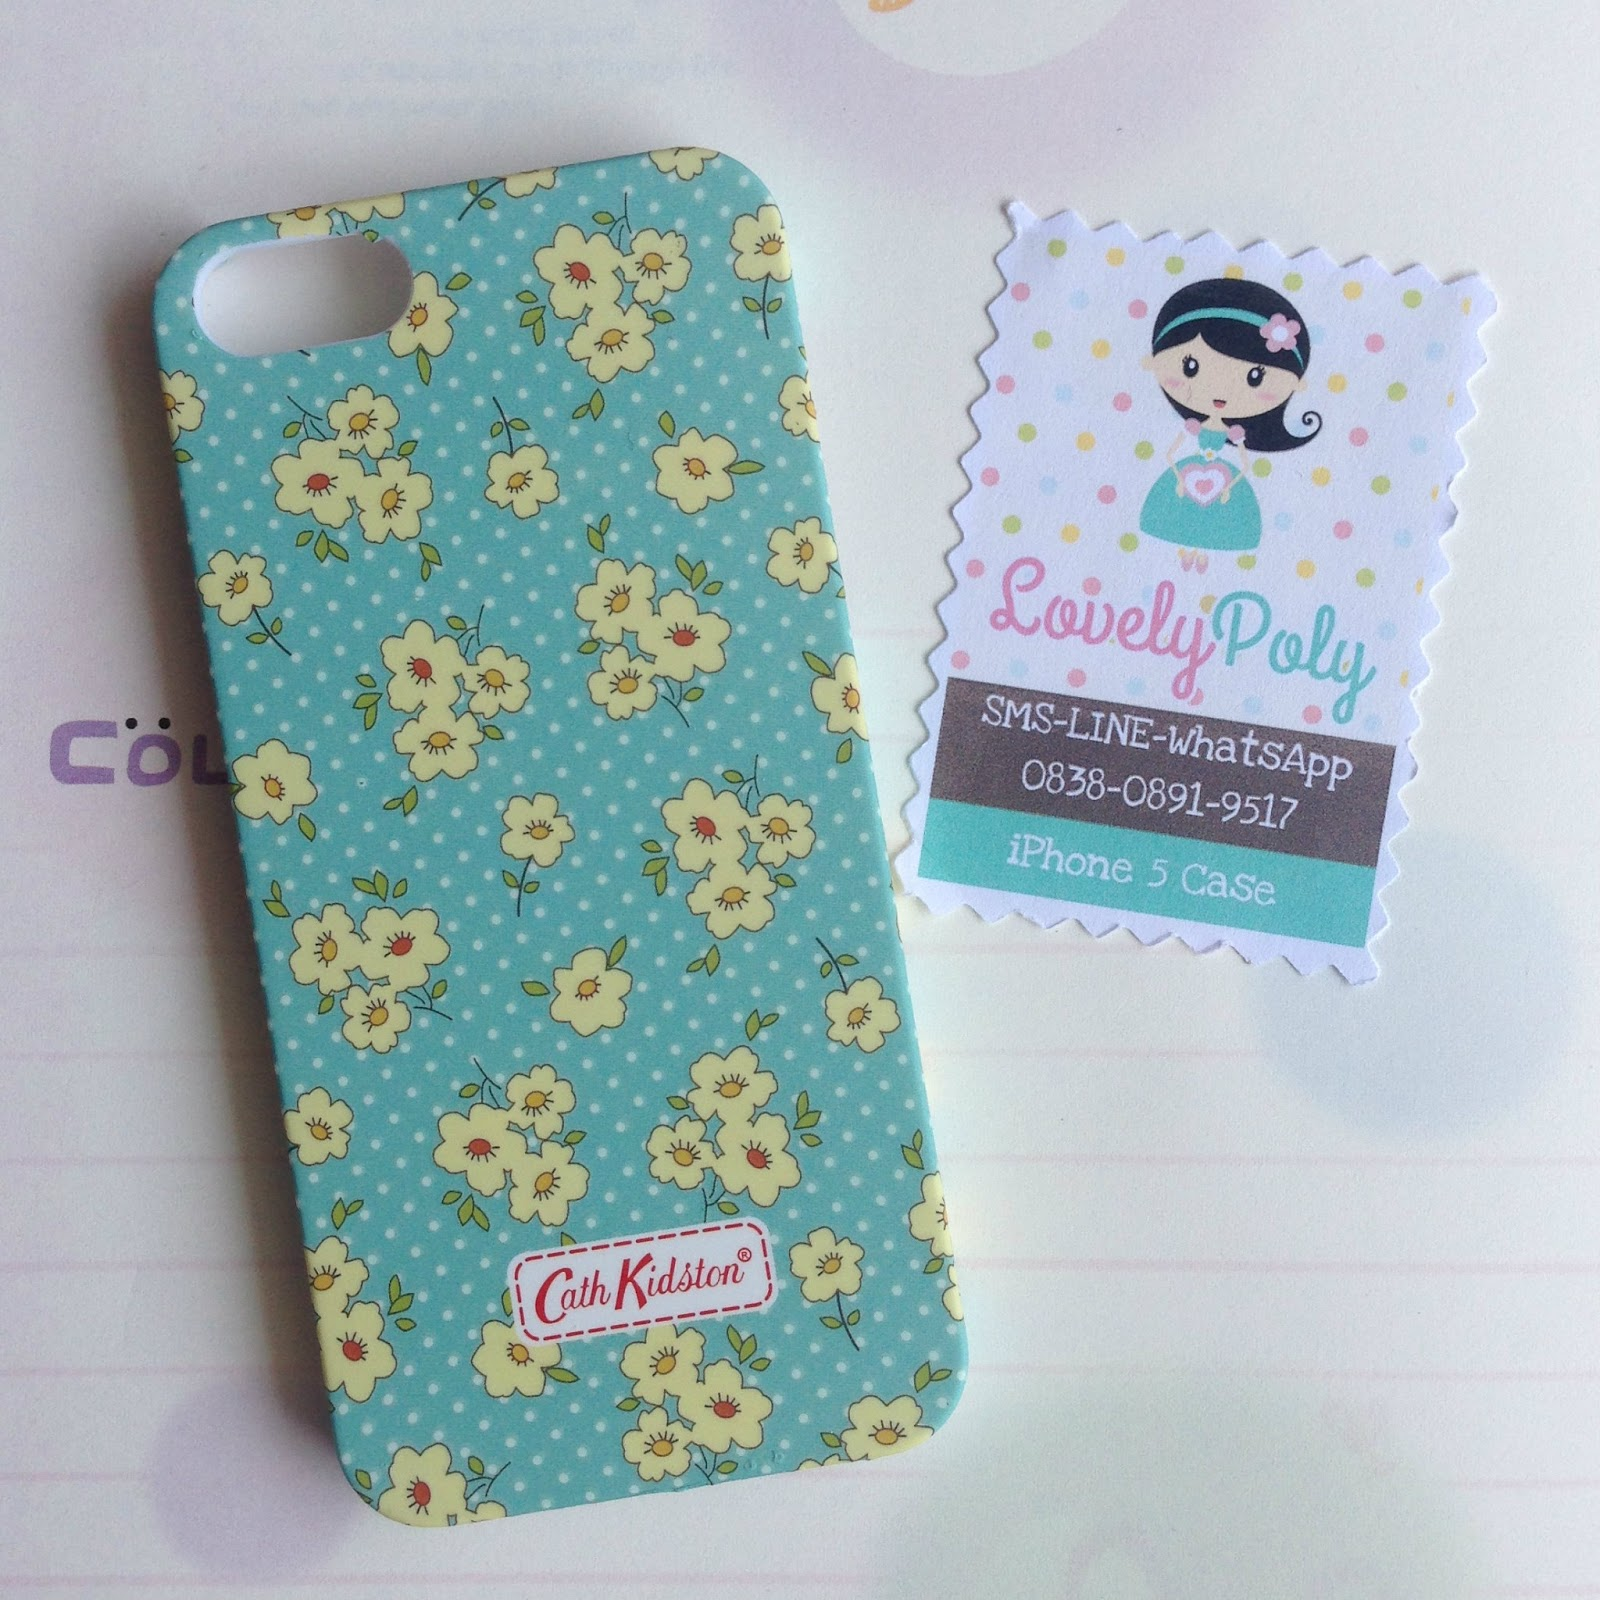 ... facebook share to pinterest labels hardcase iphone 5 case iphone case